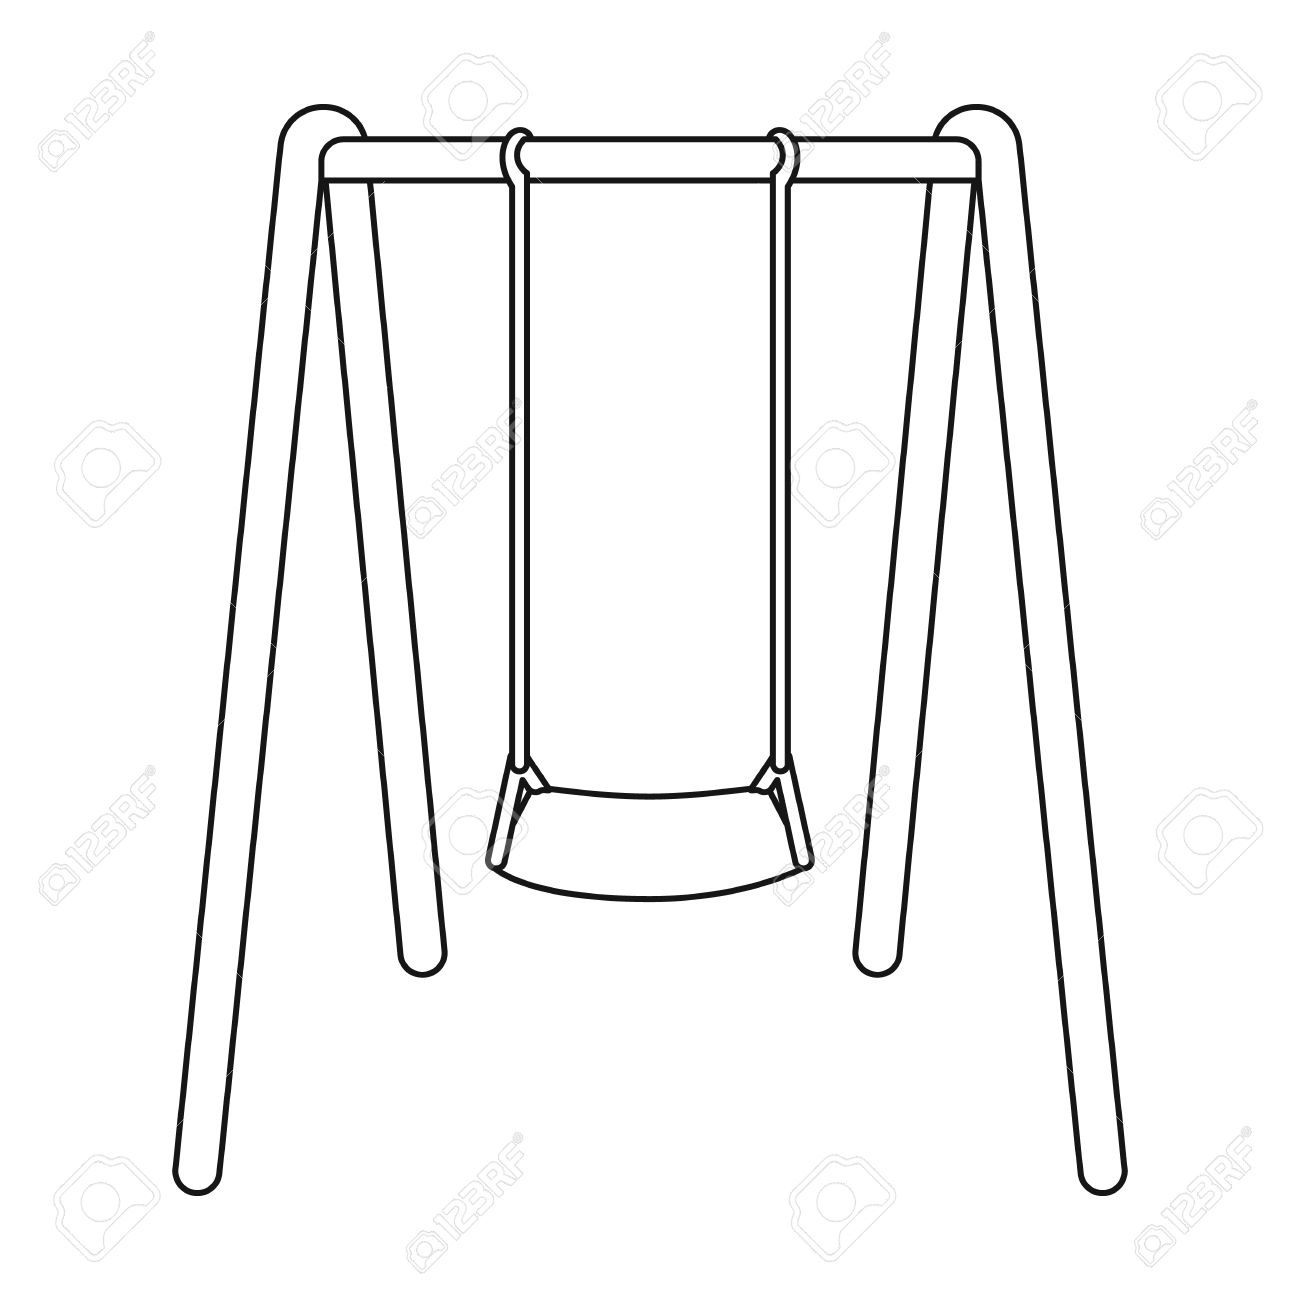 Swing Clipart Black And White Hd